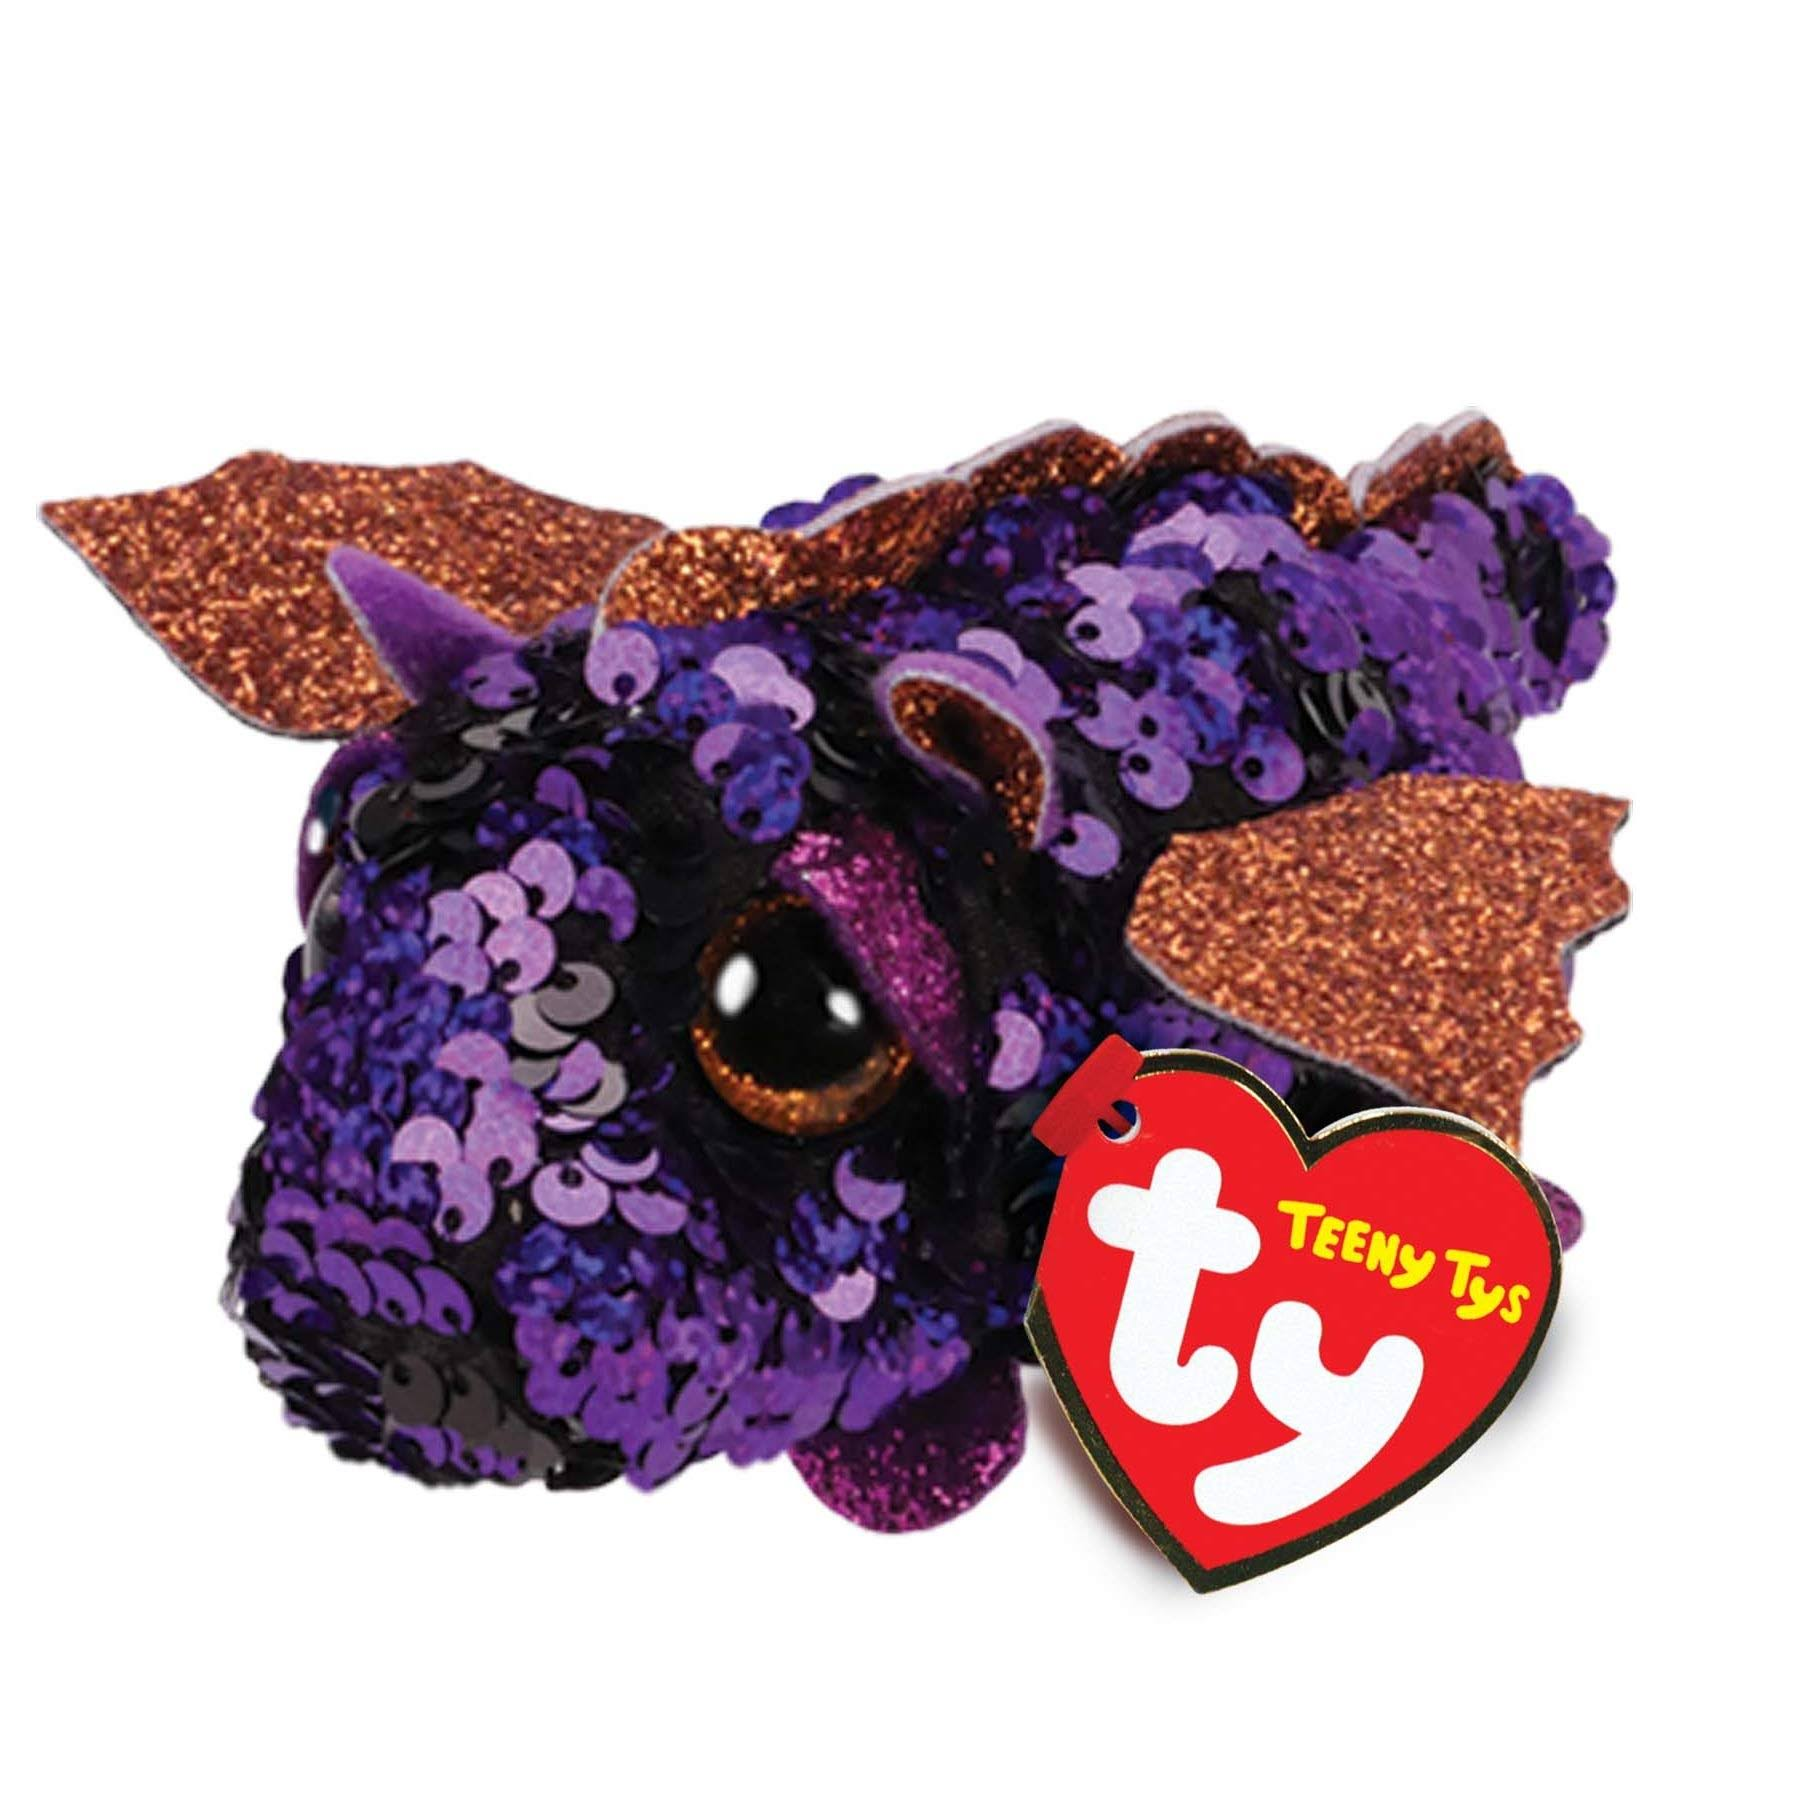 Ty Beanie Boos Teeny Tys Stackable Sequin Plush Ember The Dragon